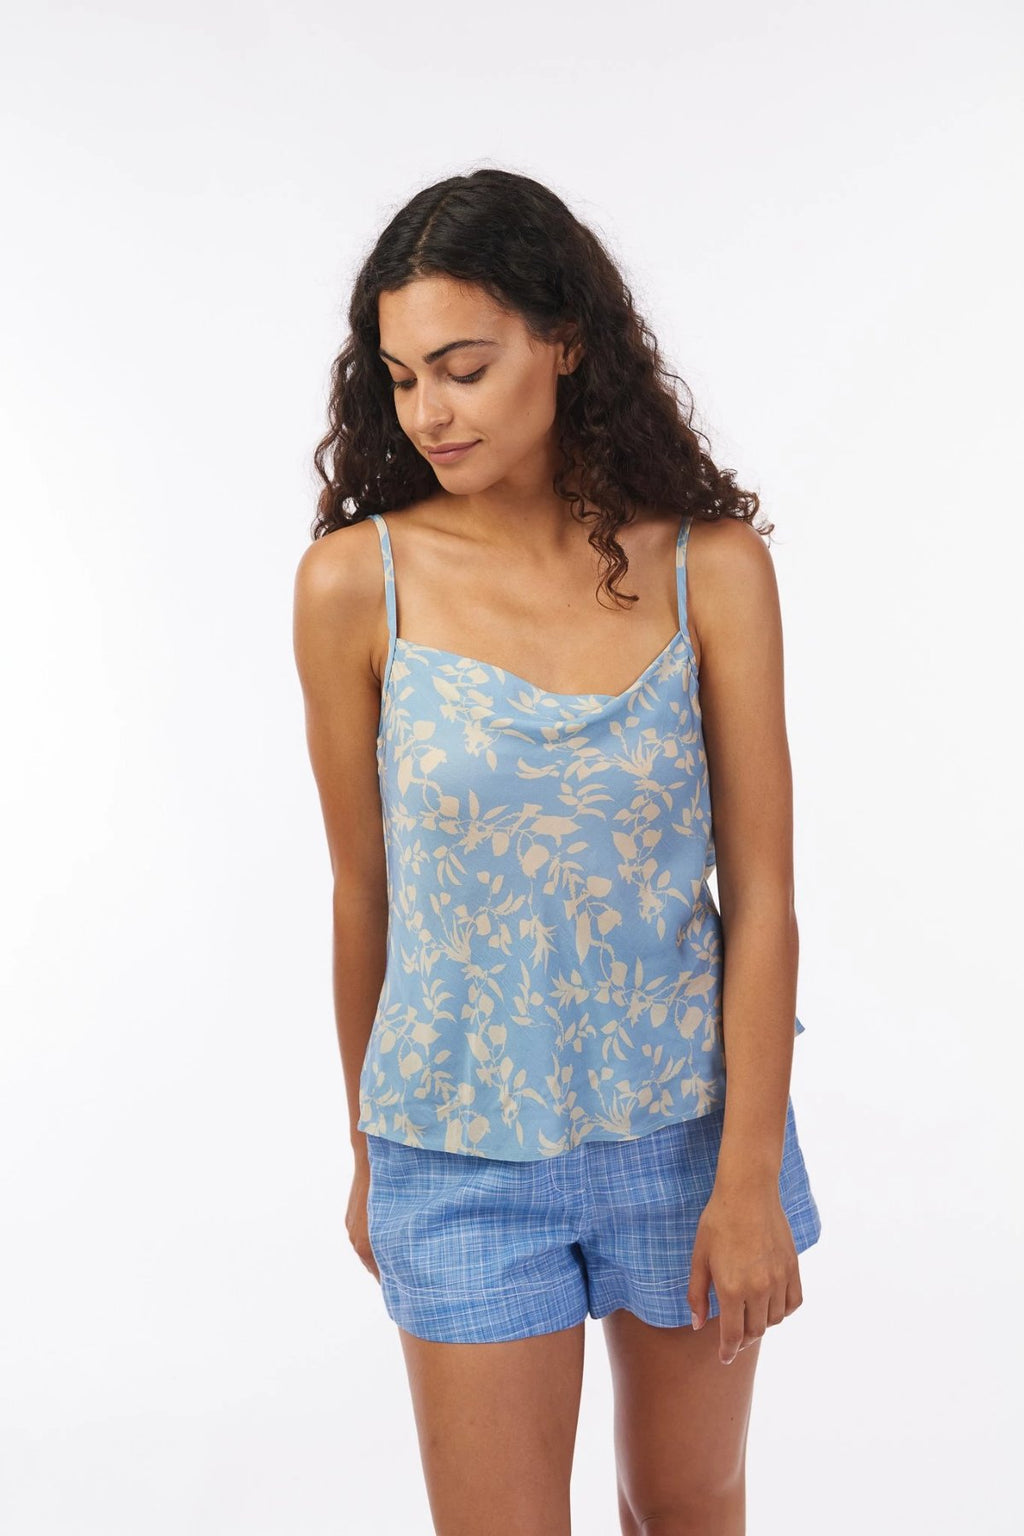 Cerulean Vine Carlotta Cami Shirts + tops Ethical Sustainable Vegan Organic Australian fashion womens clothes